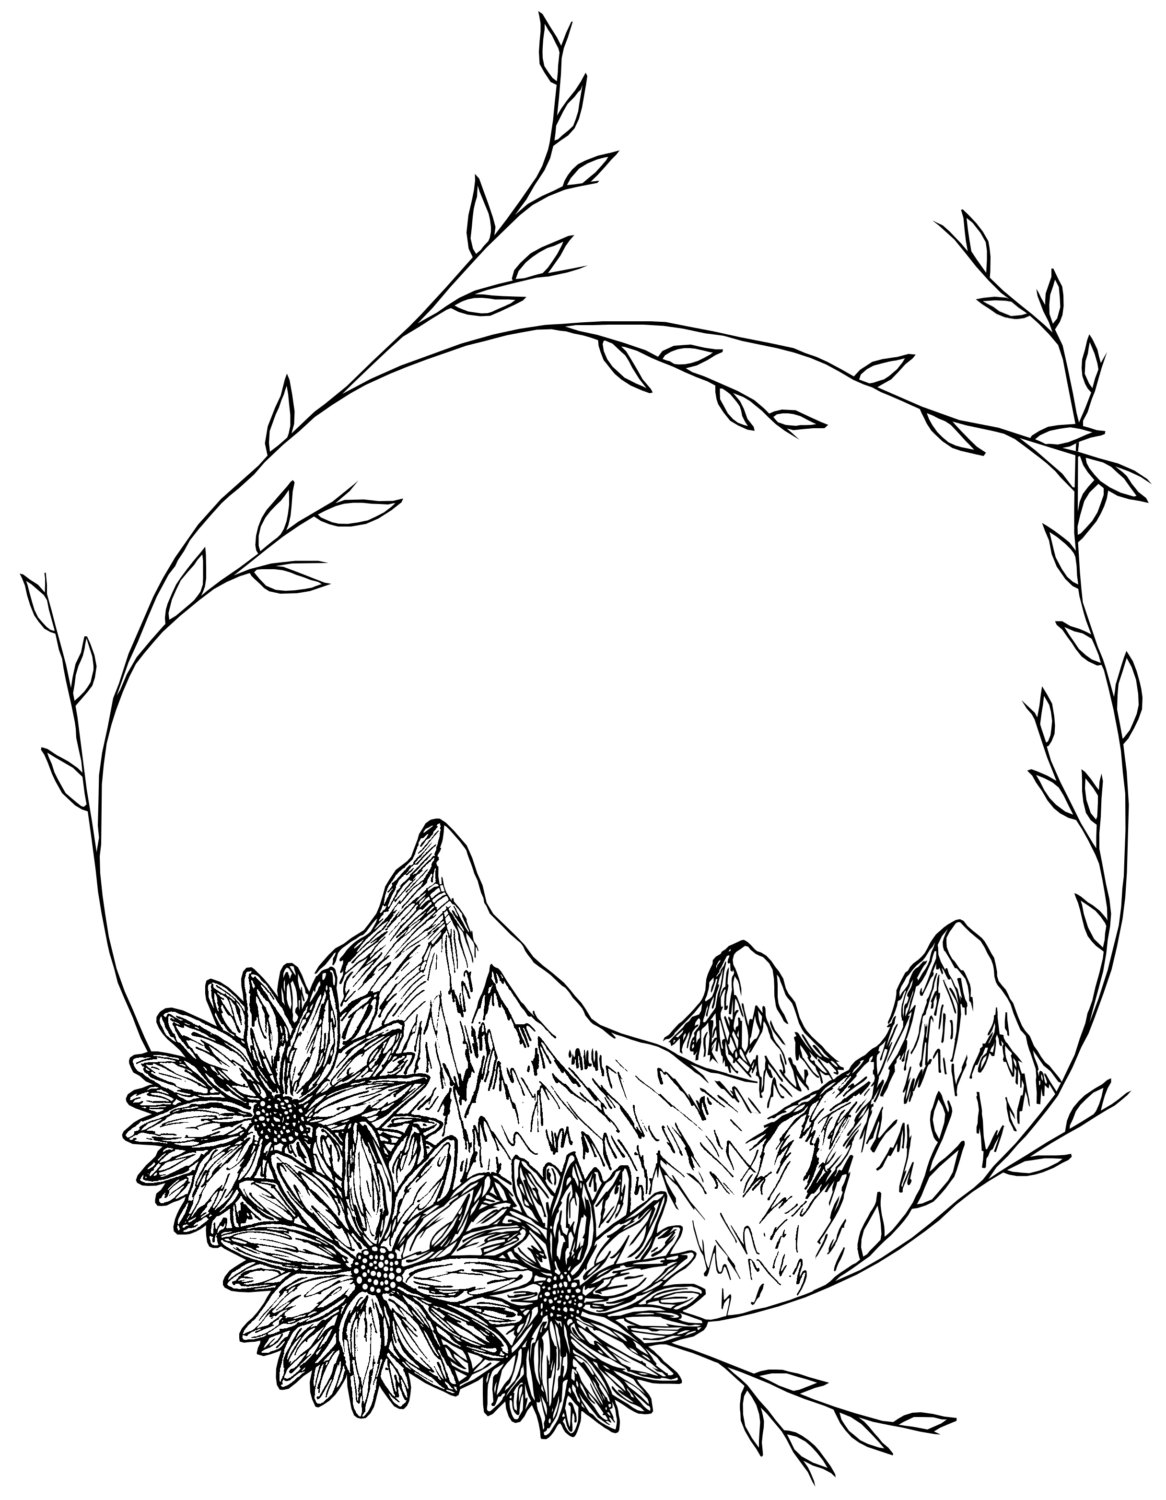 Mountain Drawing At Getdrawings Com Free For Personal Use Mountain